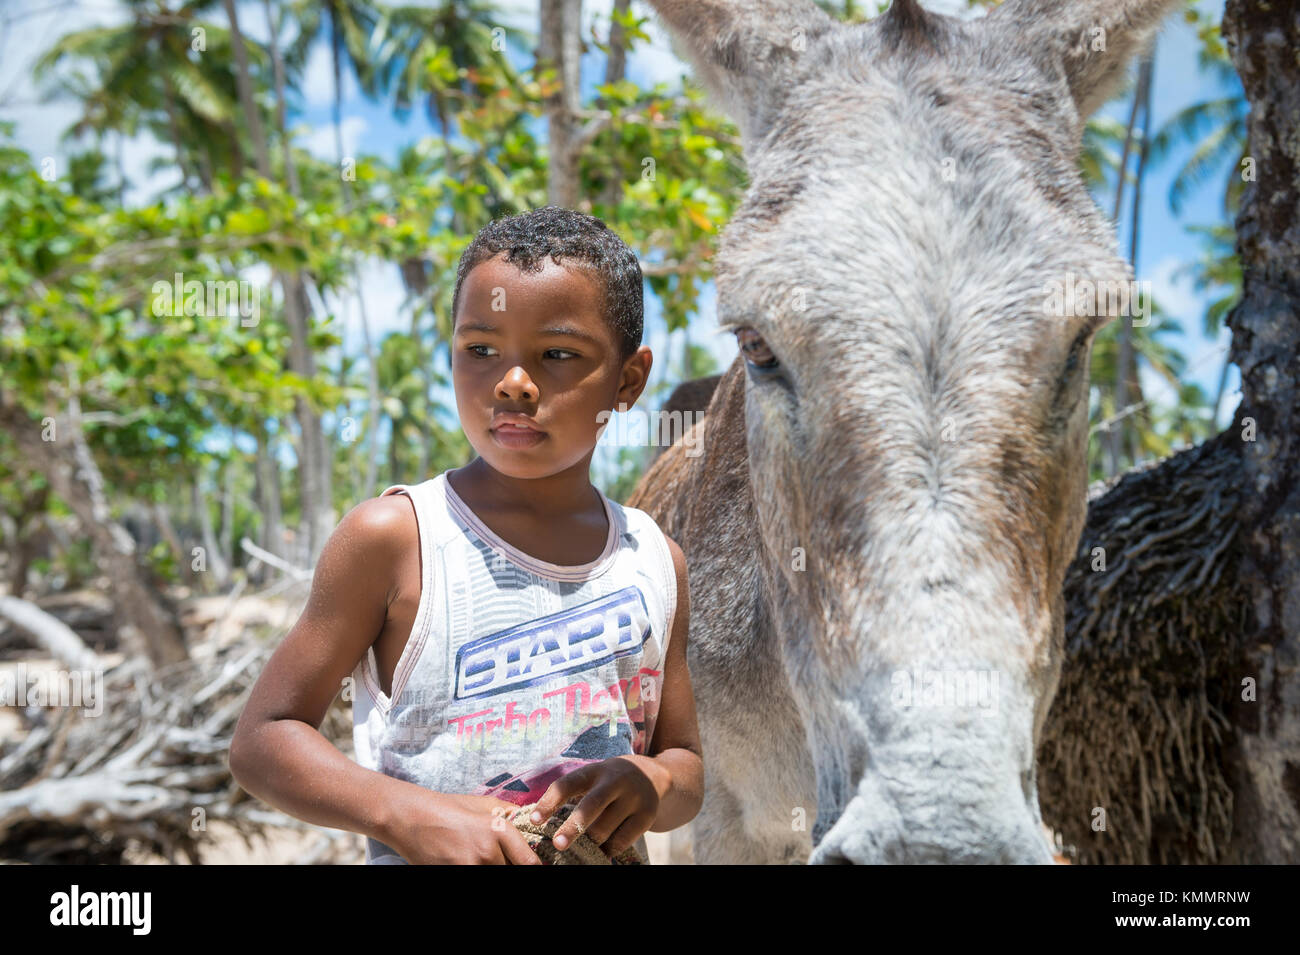 BAHIA, BRAZIL - MARCH 11, 2017: A mule stands with a young Brazilian boy on the palm-fringed shore of a Northeastern - Stock Image